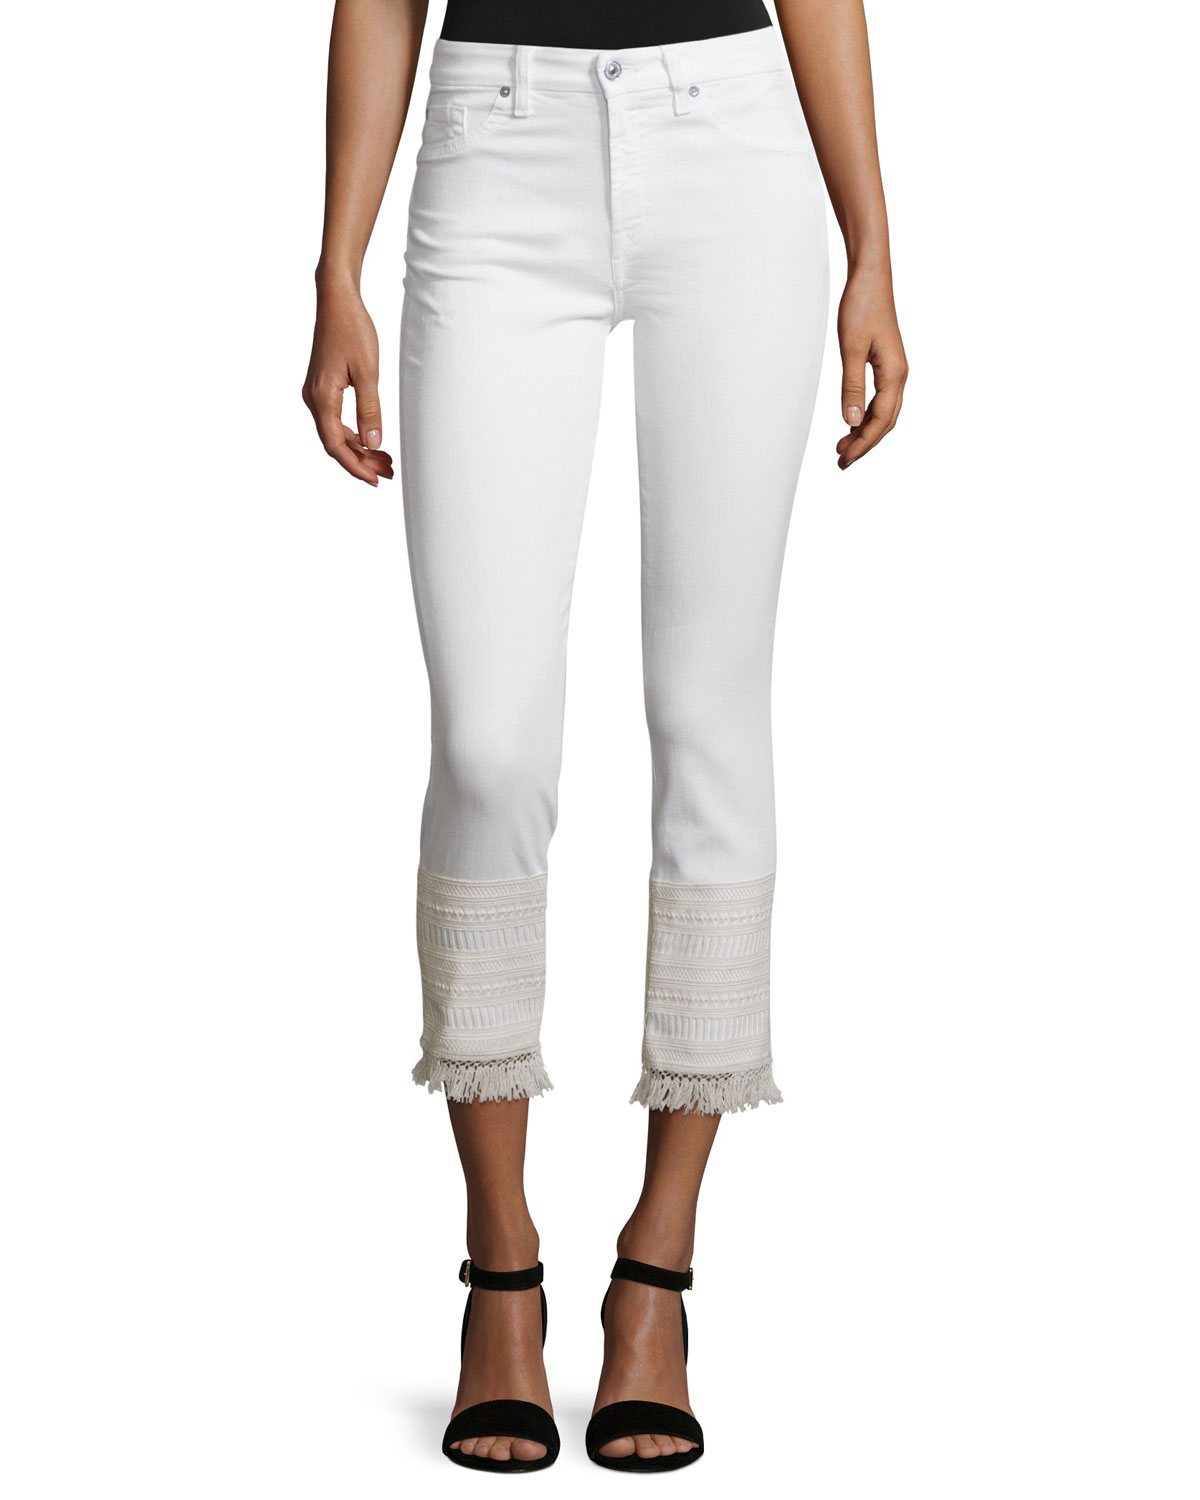 Skinny Cropped Jeans W/Fringe Lace Hem, White, Women's, Size: 24 - 7 For All Mankind